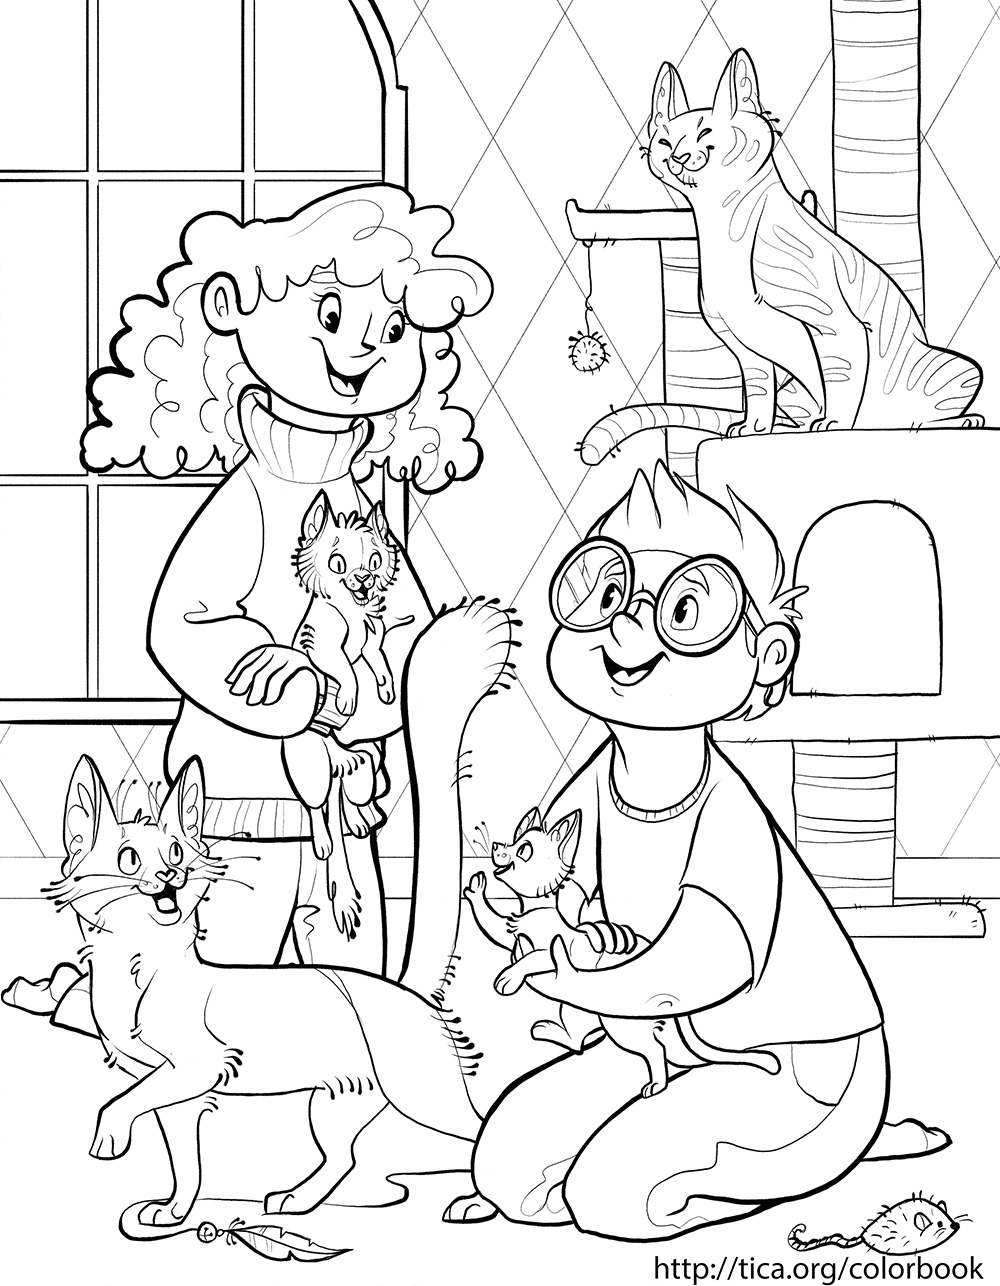 TICA Cat Coloring Book Page 1